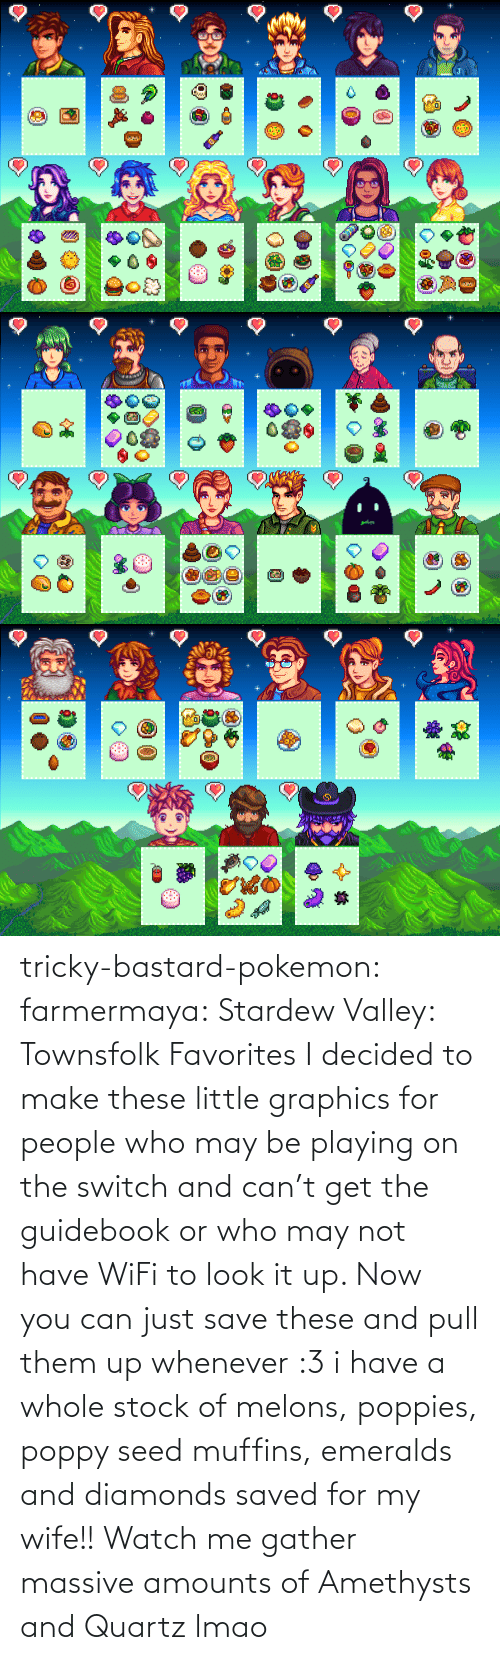 watch me: tricky-bastard-pokemon:  farmermaya: Stardew Valley: Townsfolk Favorites  I decided to make these little graphics for people who may be playing on the switch and can't get the guidebook or who may not have WiFi to look it up. Now you can just save these and pull them up whenever :3   i have a whole stock of melons, poppies, poppy seed muffins, emeralds and diamonds saved for my wife!!    Watch me gather massive amounts of Amethysts and Quartz lmao